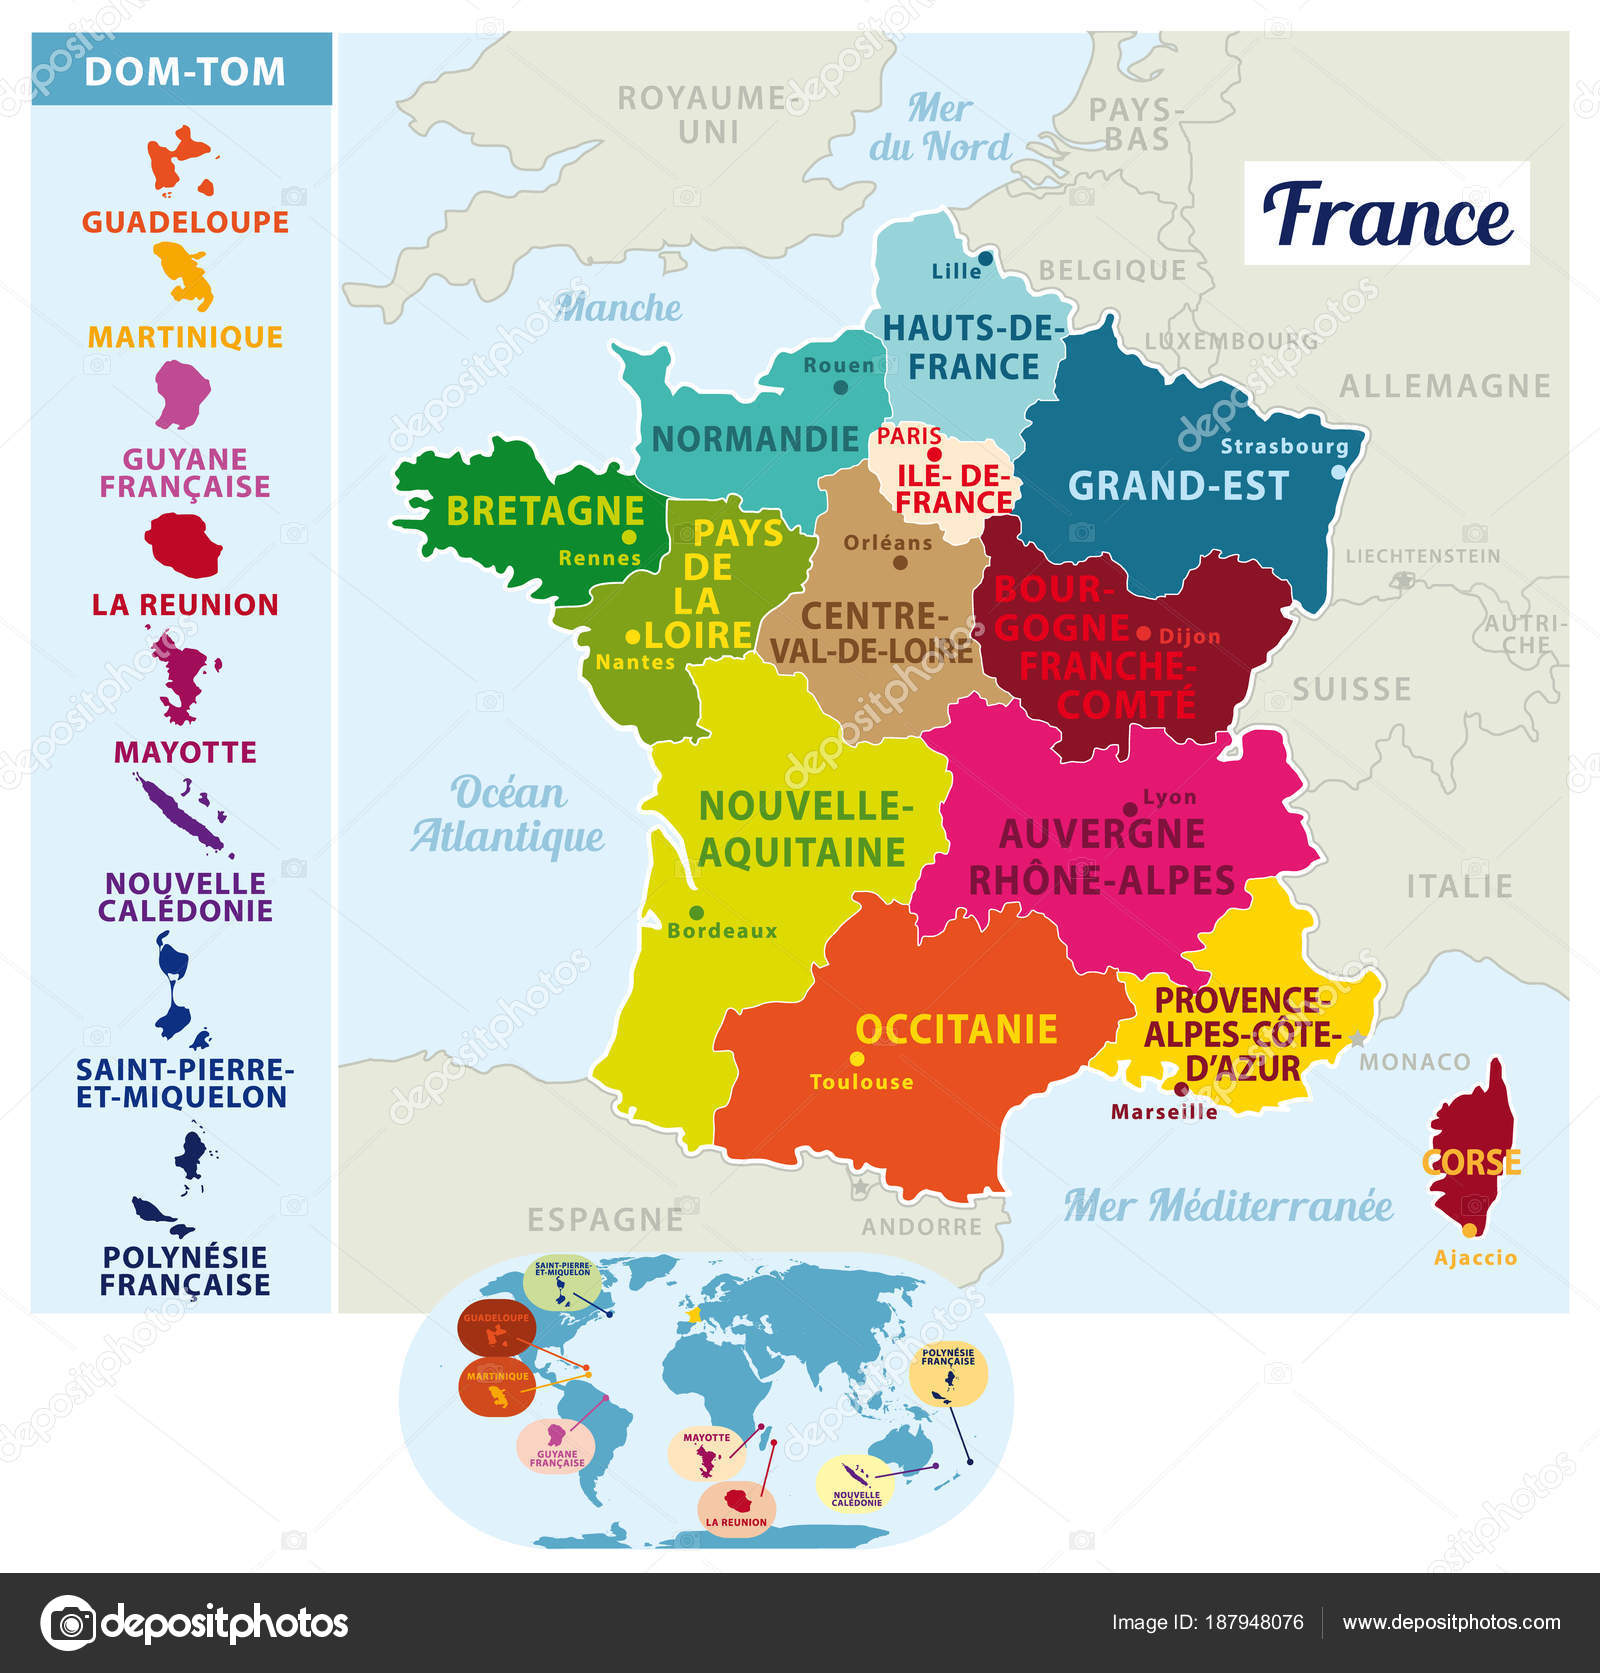 Map Of France 1600.Beautiful Colorful Detailes Map France French Islands New Regions